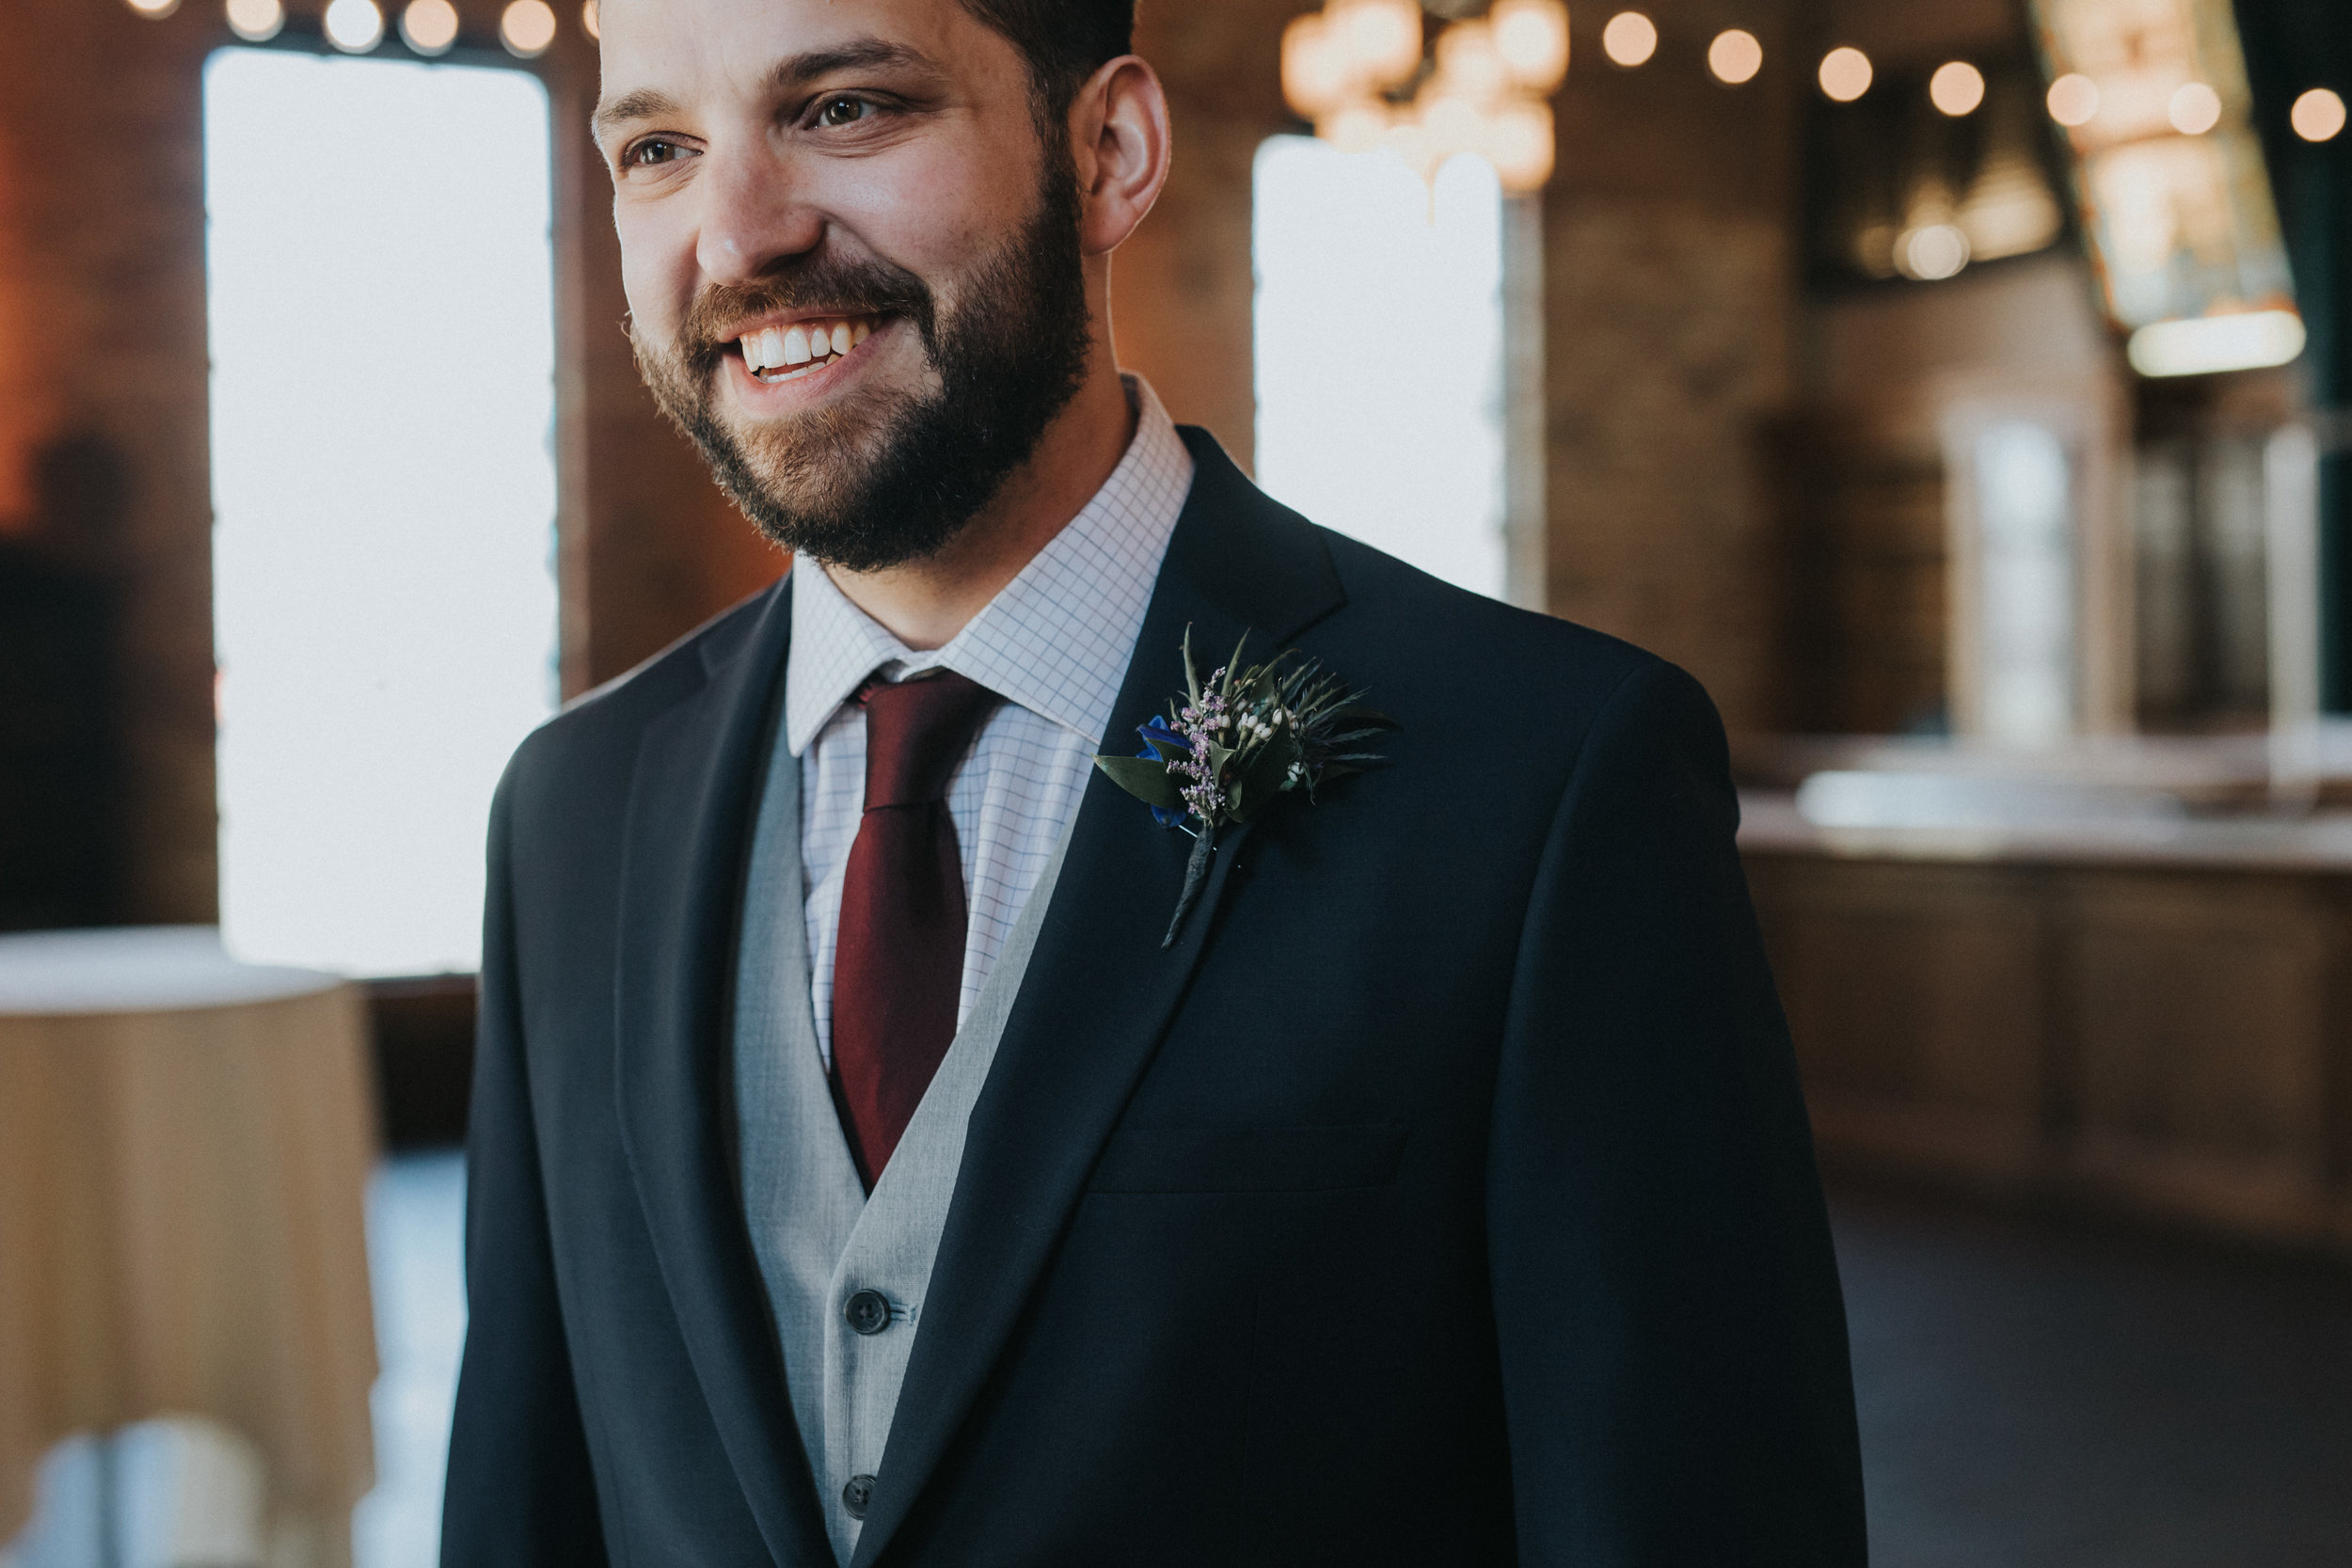 blue thistle boutonniere, groom with beard, groom in navy with gray vest and burgundy tie | Russell Heeter Photography :: Minneapolis wedding planner Sixpence Events :: Nicollet Island Pavilion :: april wedding in Minnesota.jpg